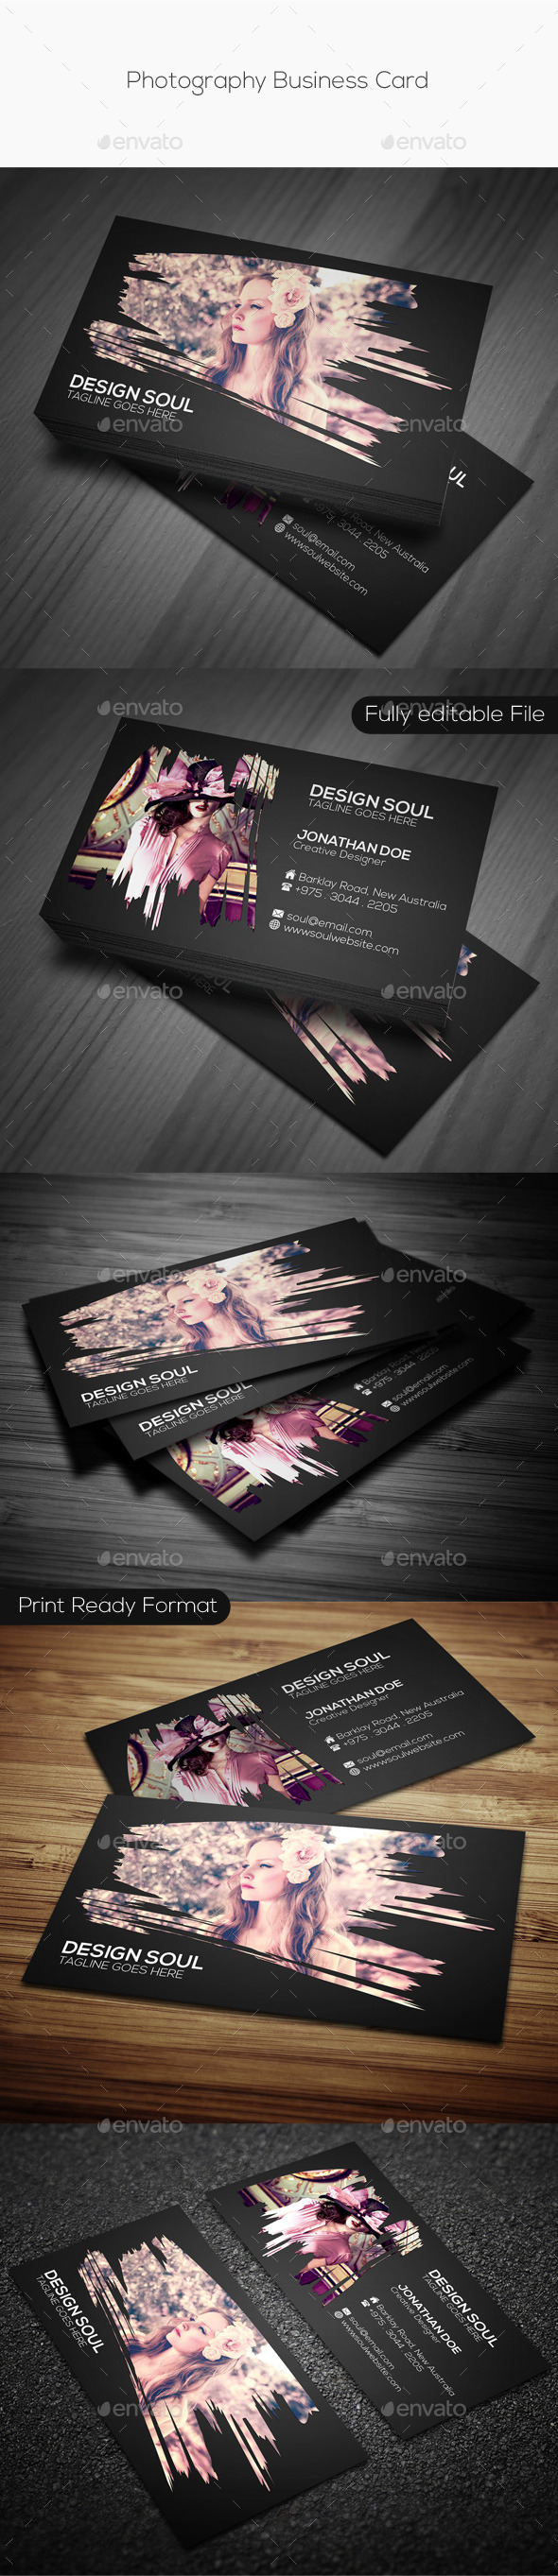 GraphicRiver Photography Business Card 9259529